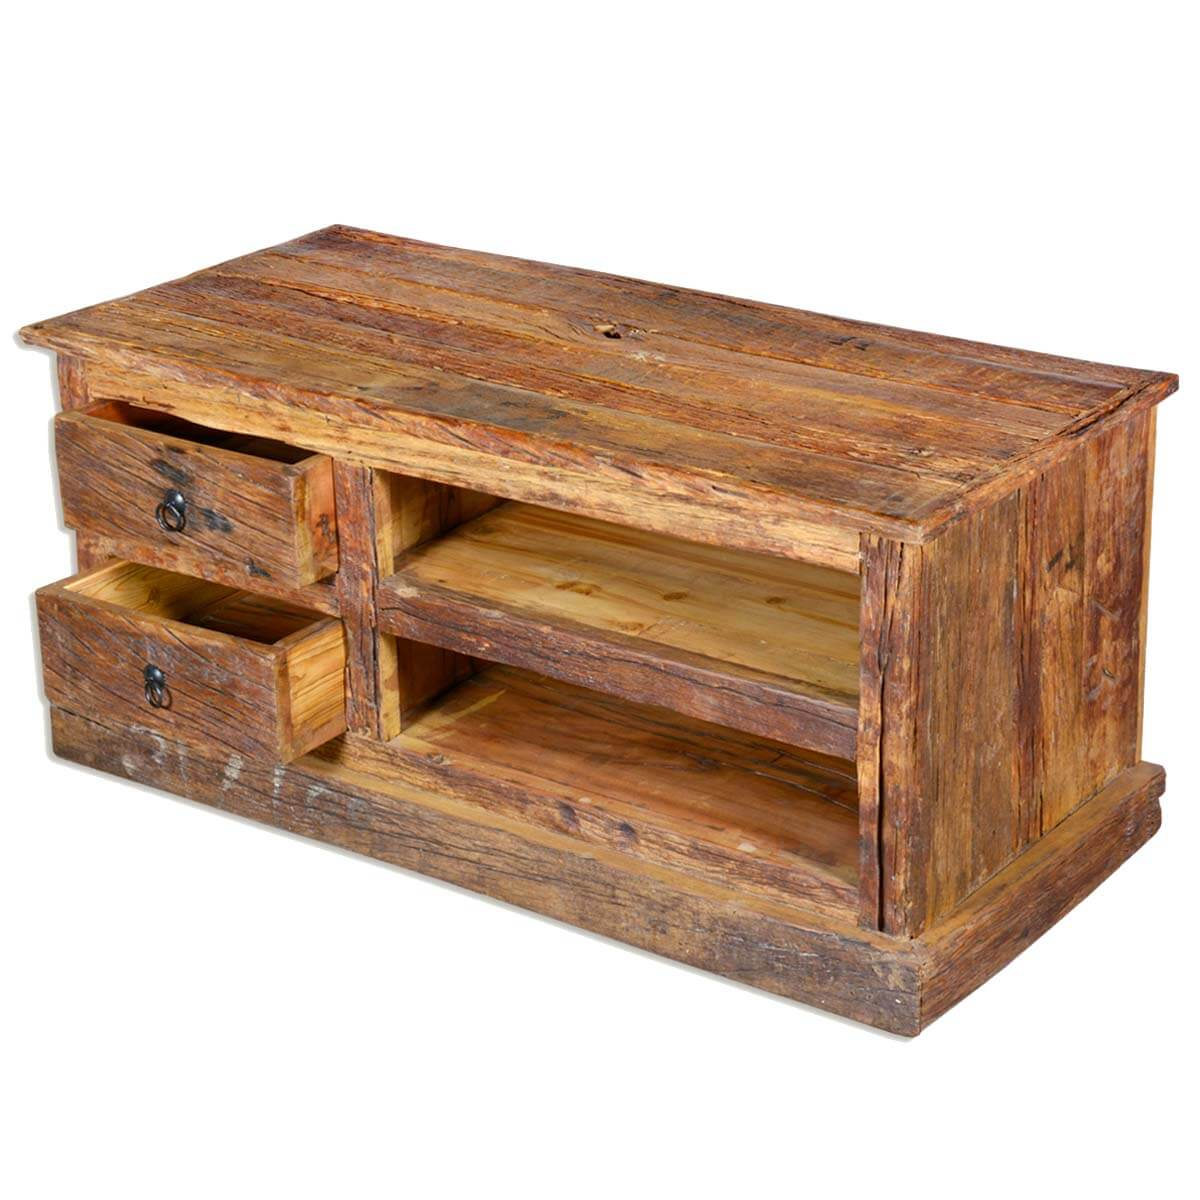 Wooden Center Console ~ Rustic railroad reclaimed wood media center console